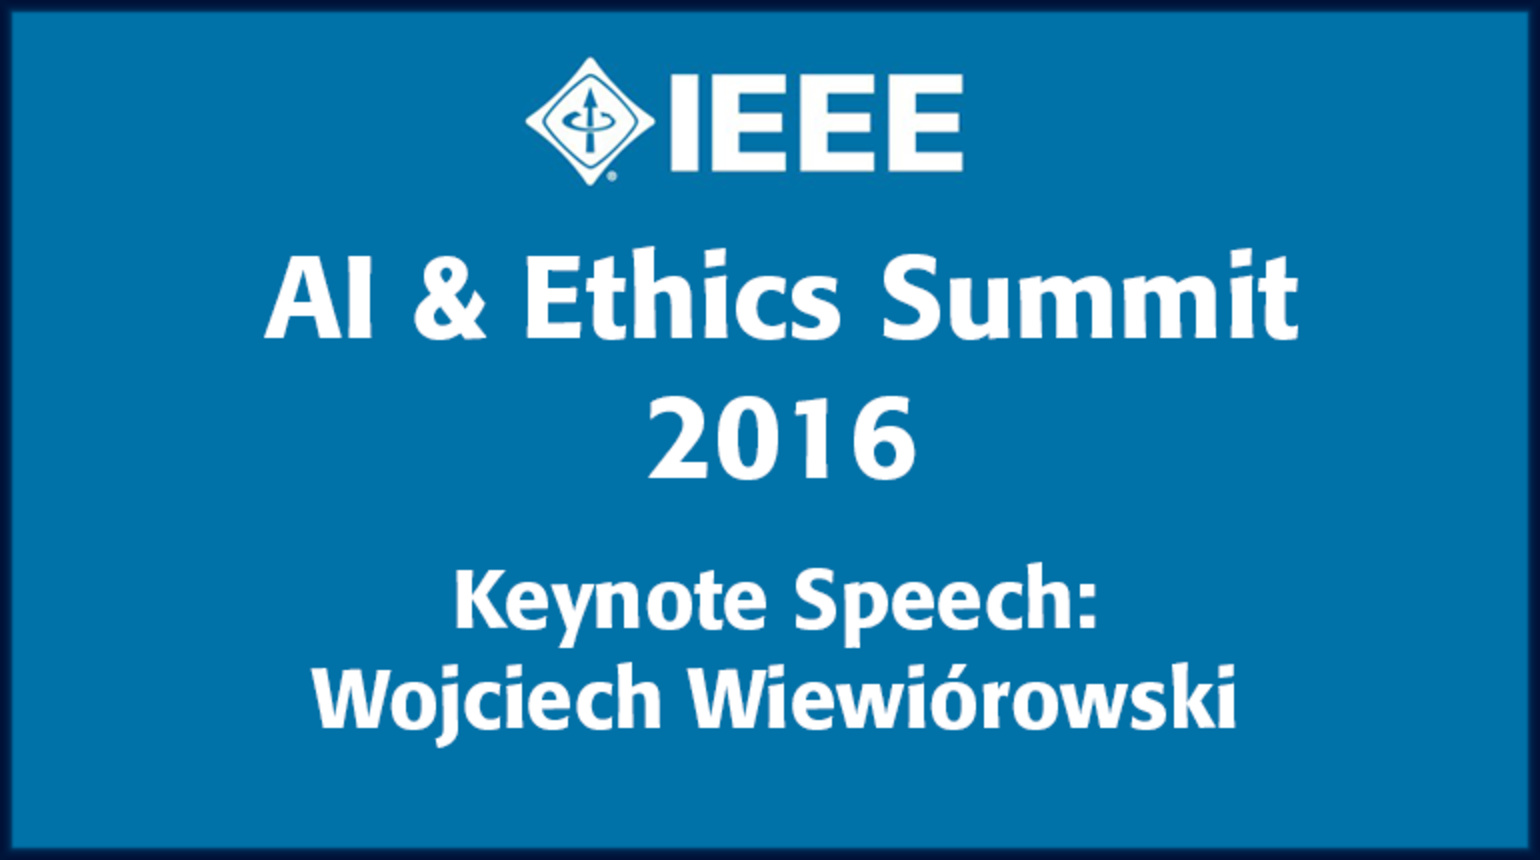 Keynote Address and Opening Remarks - IEEE AI & Ethics Summit 2016